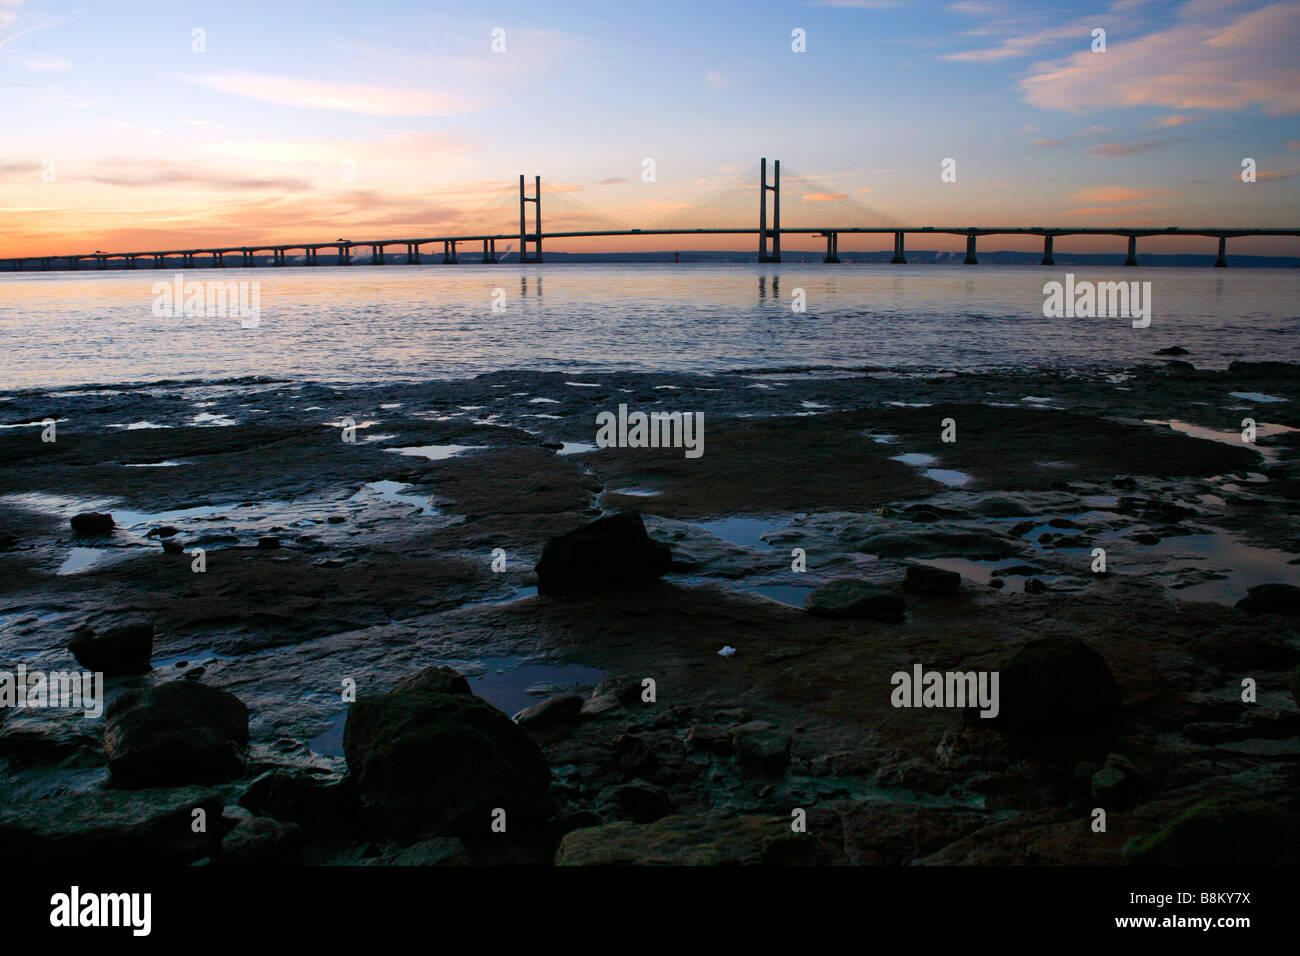 The new Severn Bridge inaugurated in 1996, seen from the Welsh side of the River Severn near Portskewett, Monmouthshire. Stock Photo